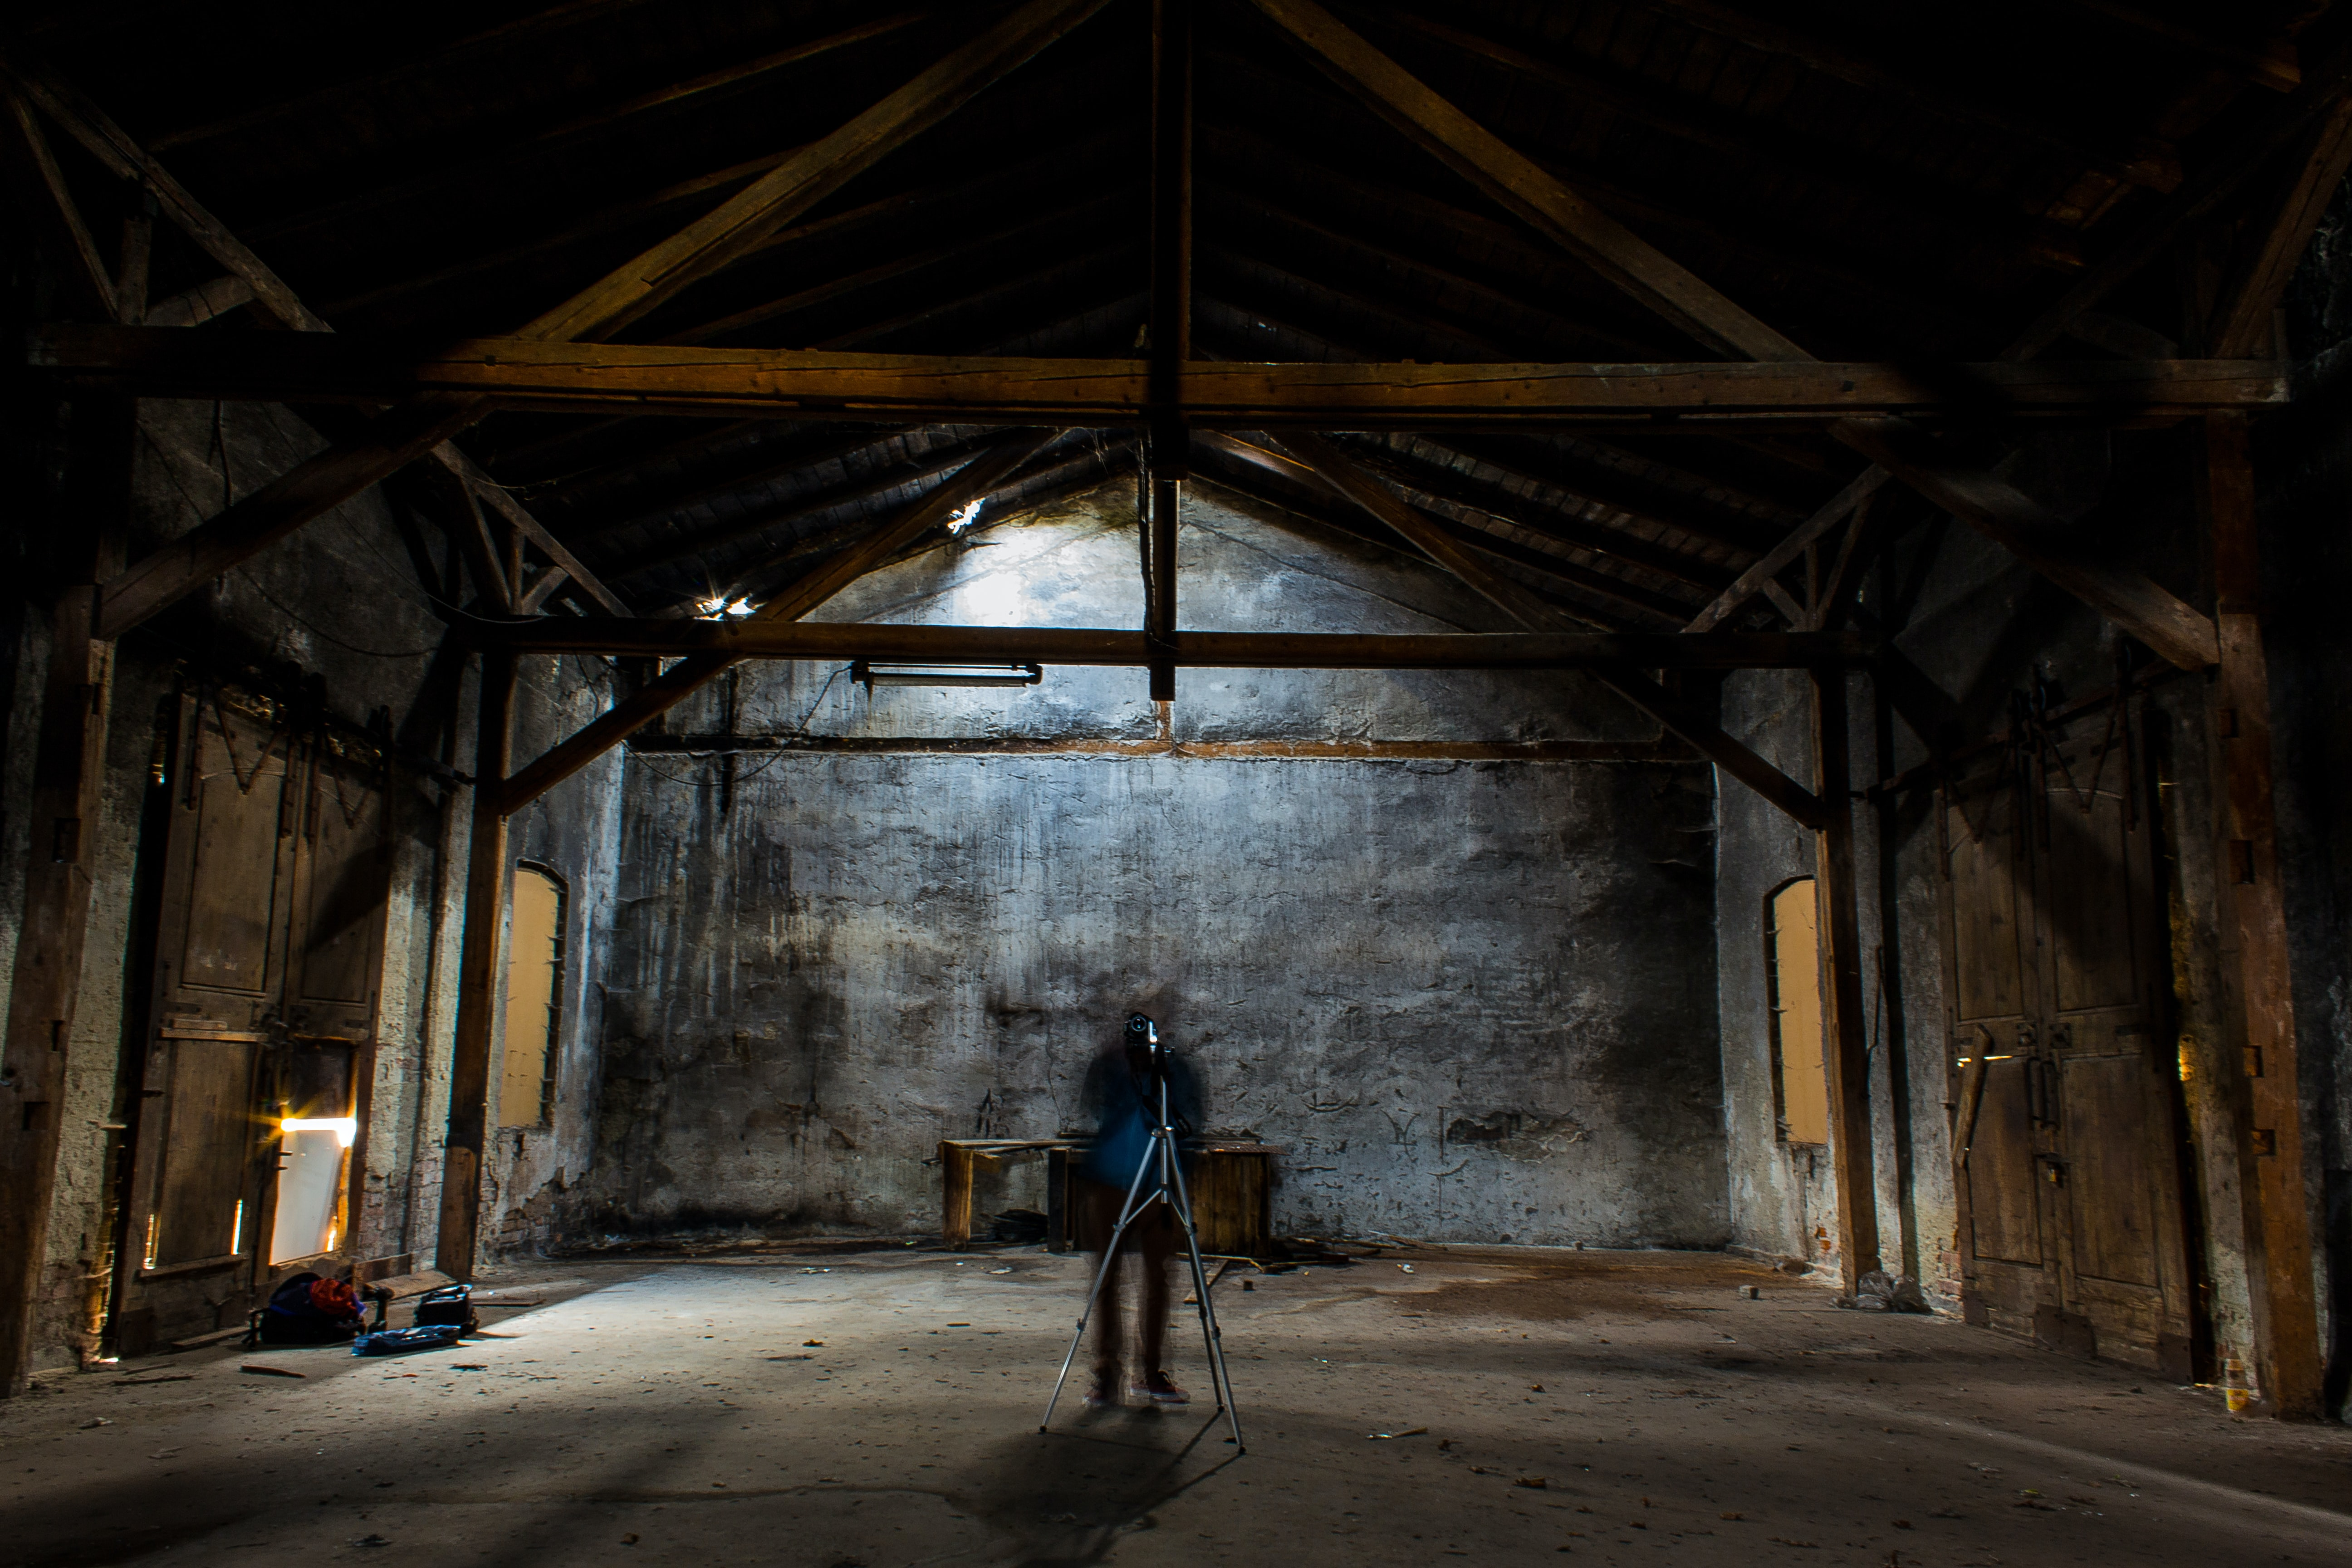 Ghostly figure in the barn